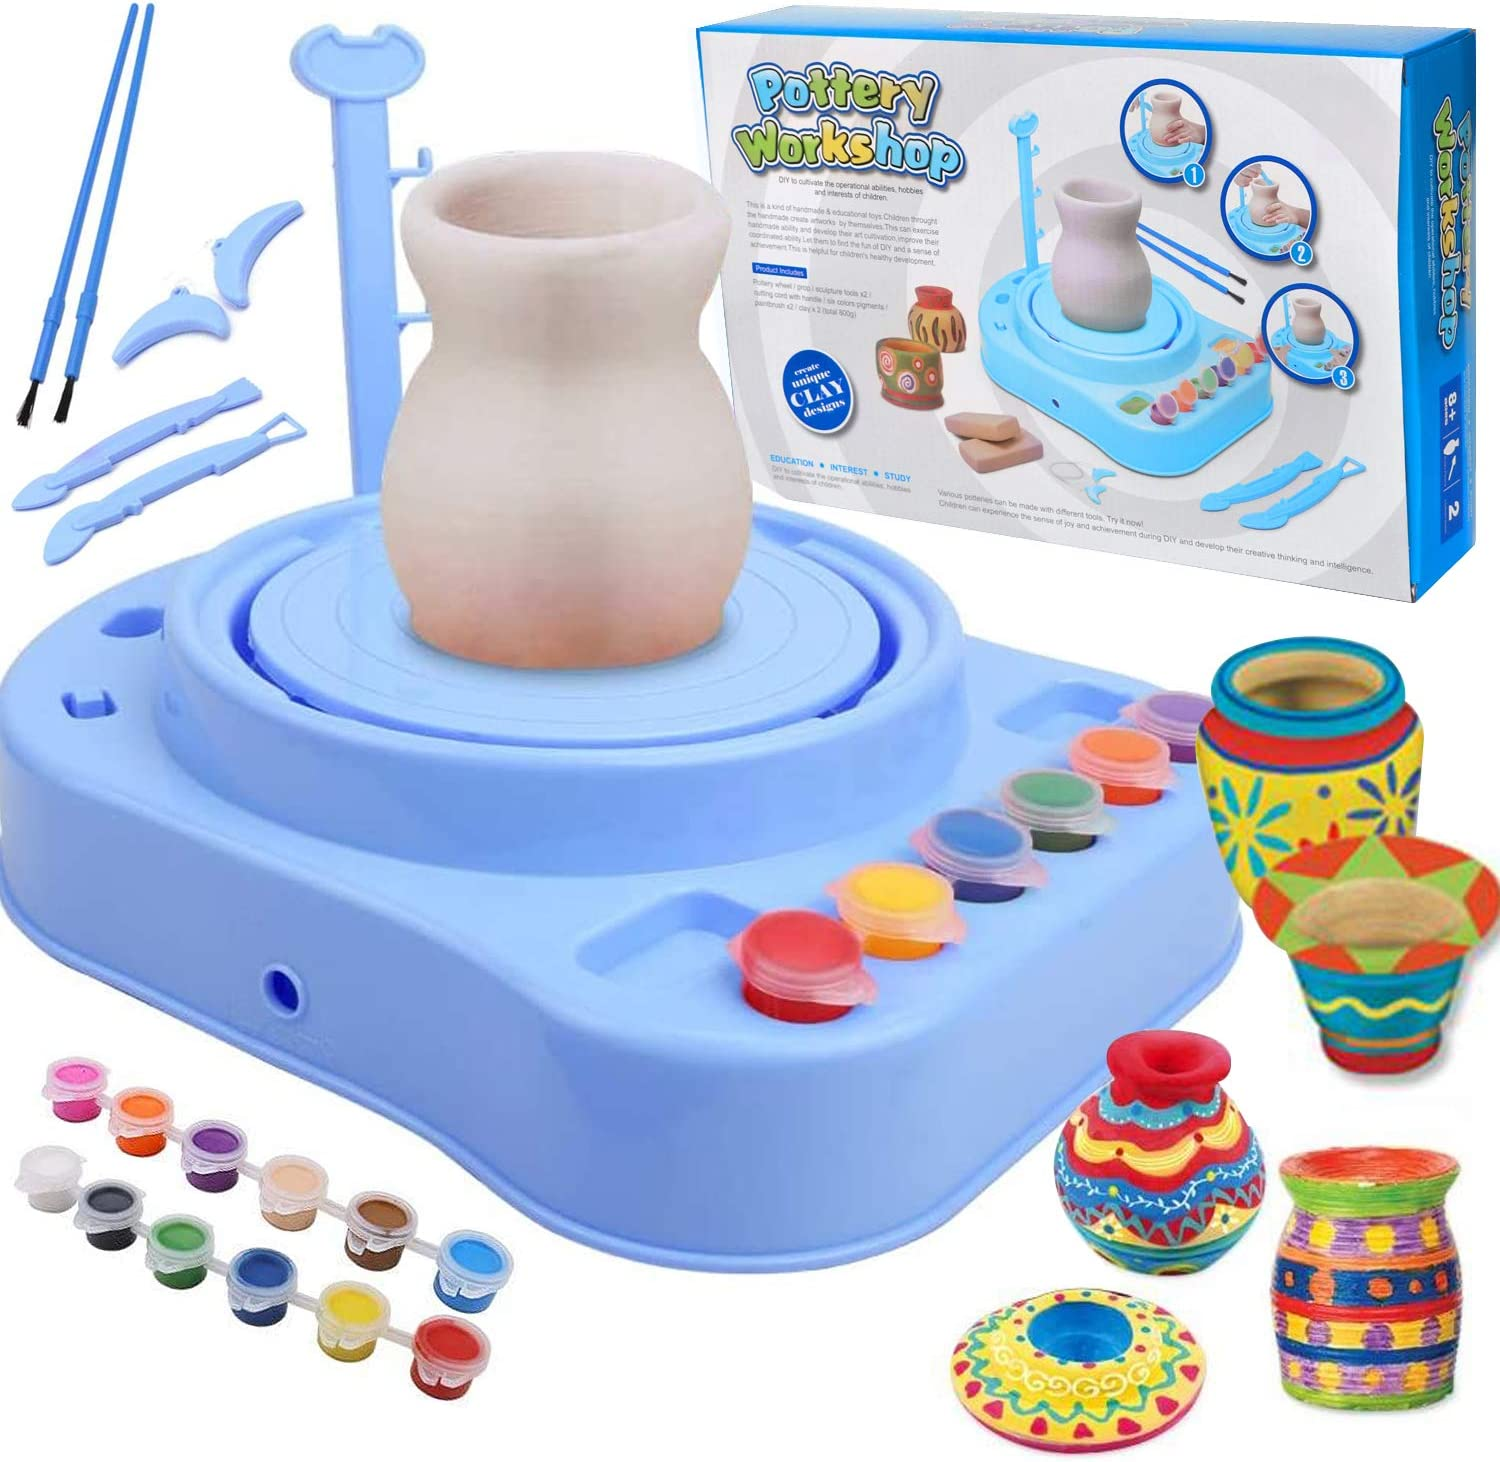 YONGSHUO Pottery San Diego Mall Wheel for Kids Arts excellence Do Art Studio and